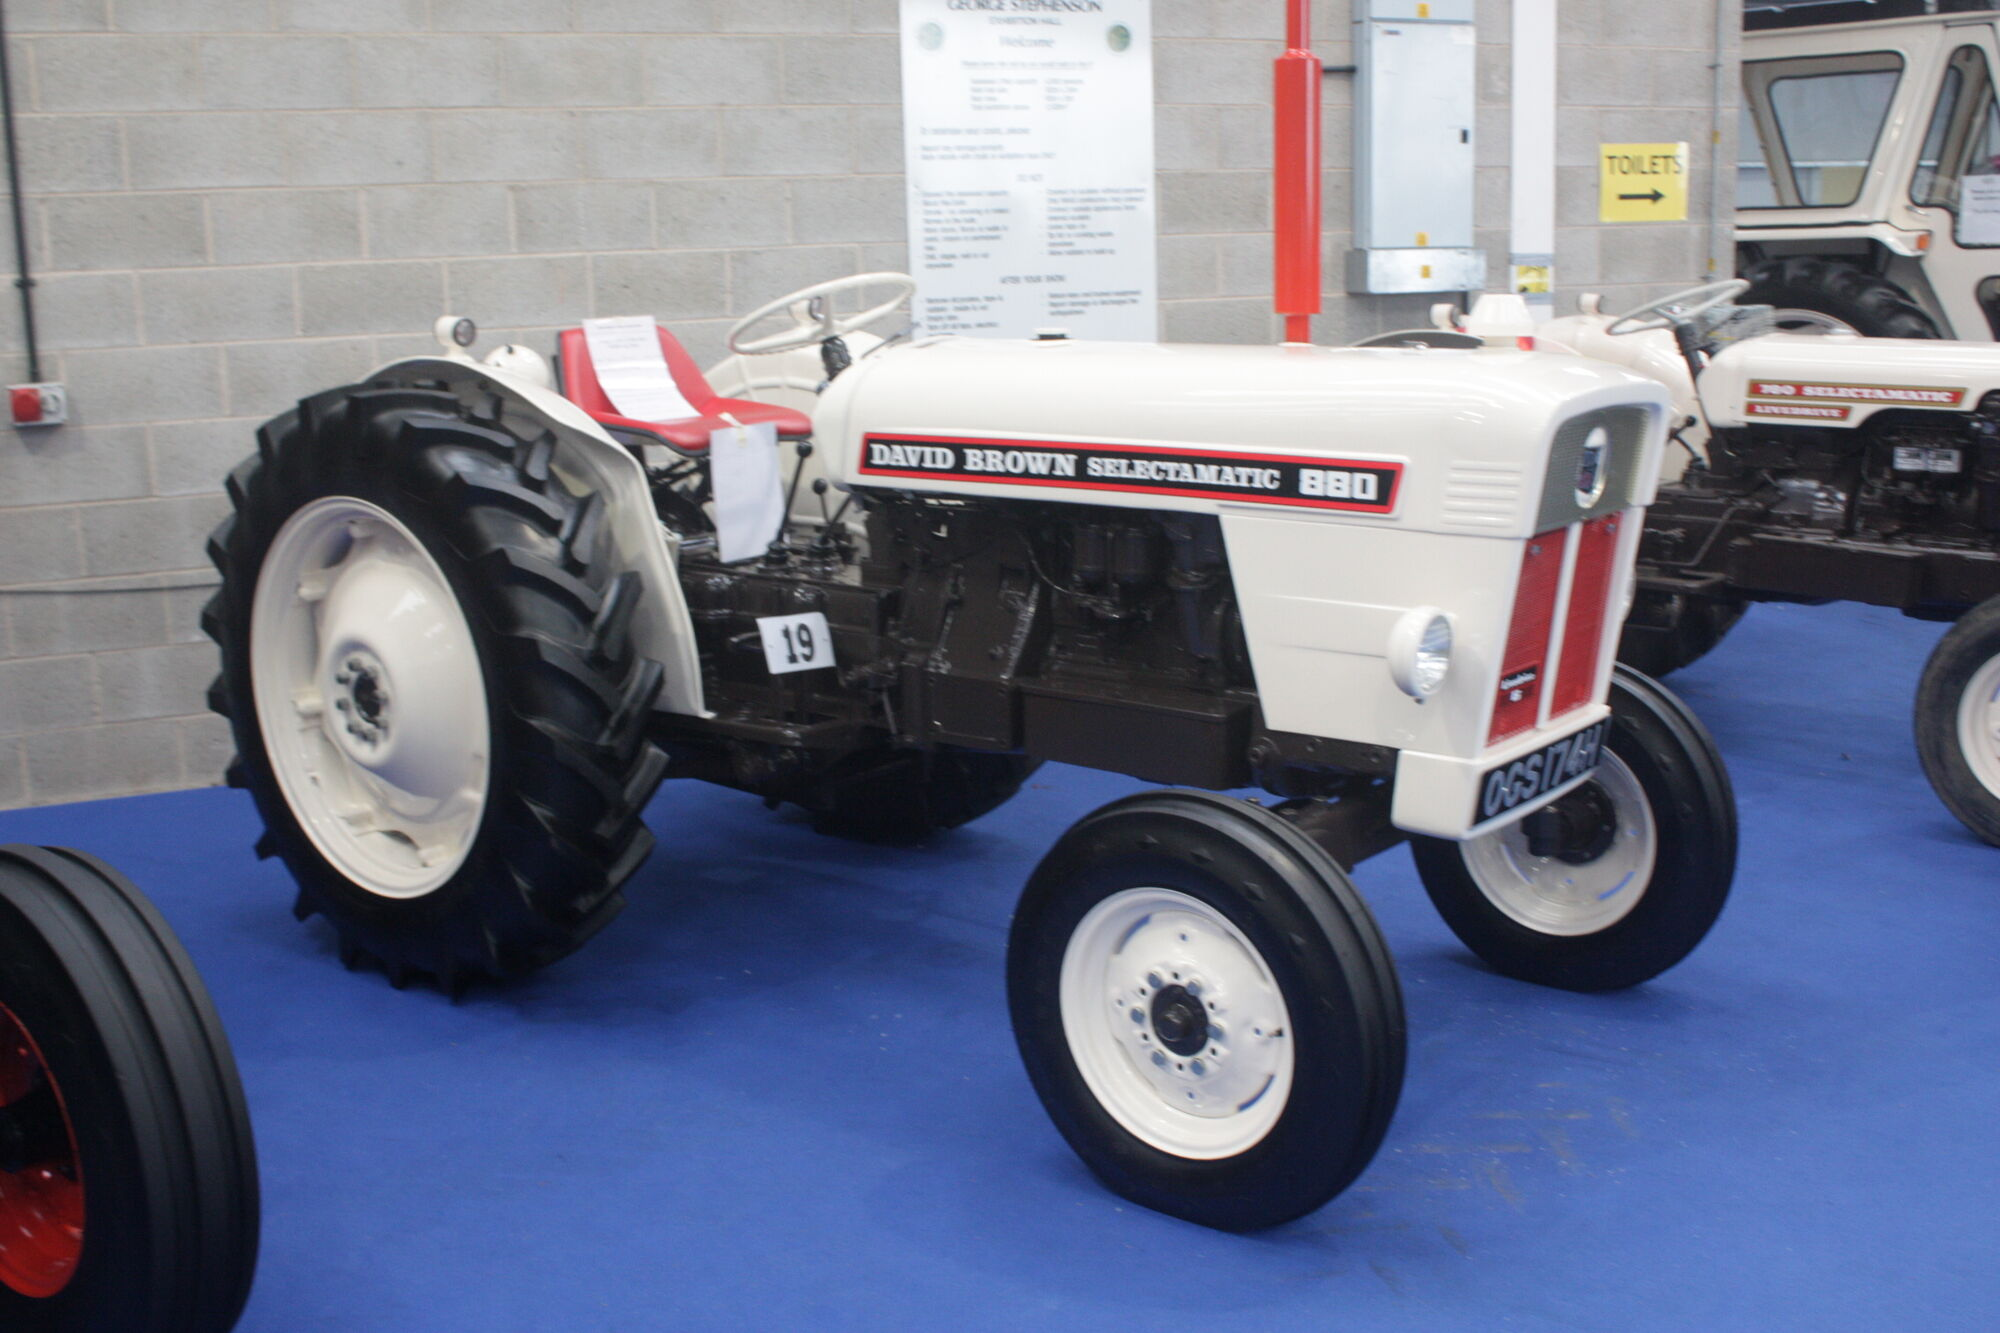 David Brown 880 Selectamatic | Tractor & Construction Plant Wiki | FANDOM  powered by Wikia